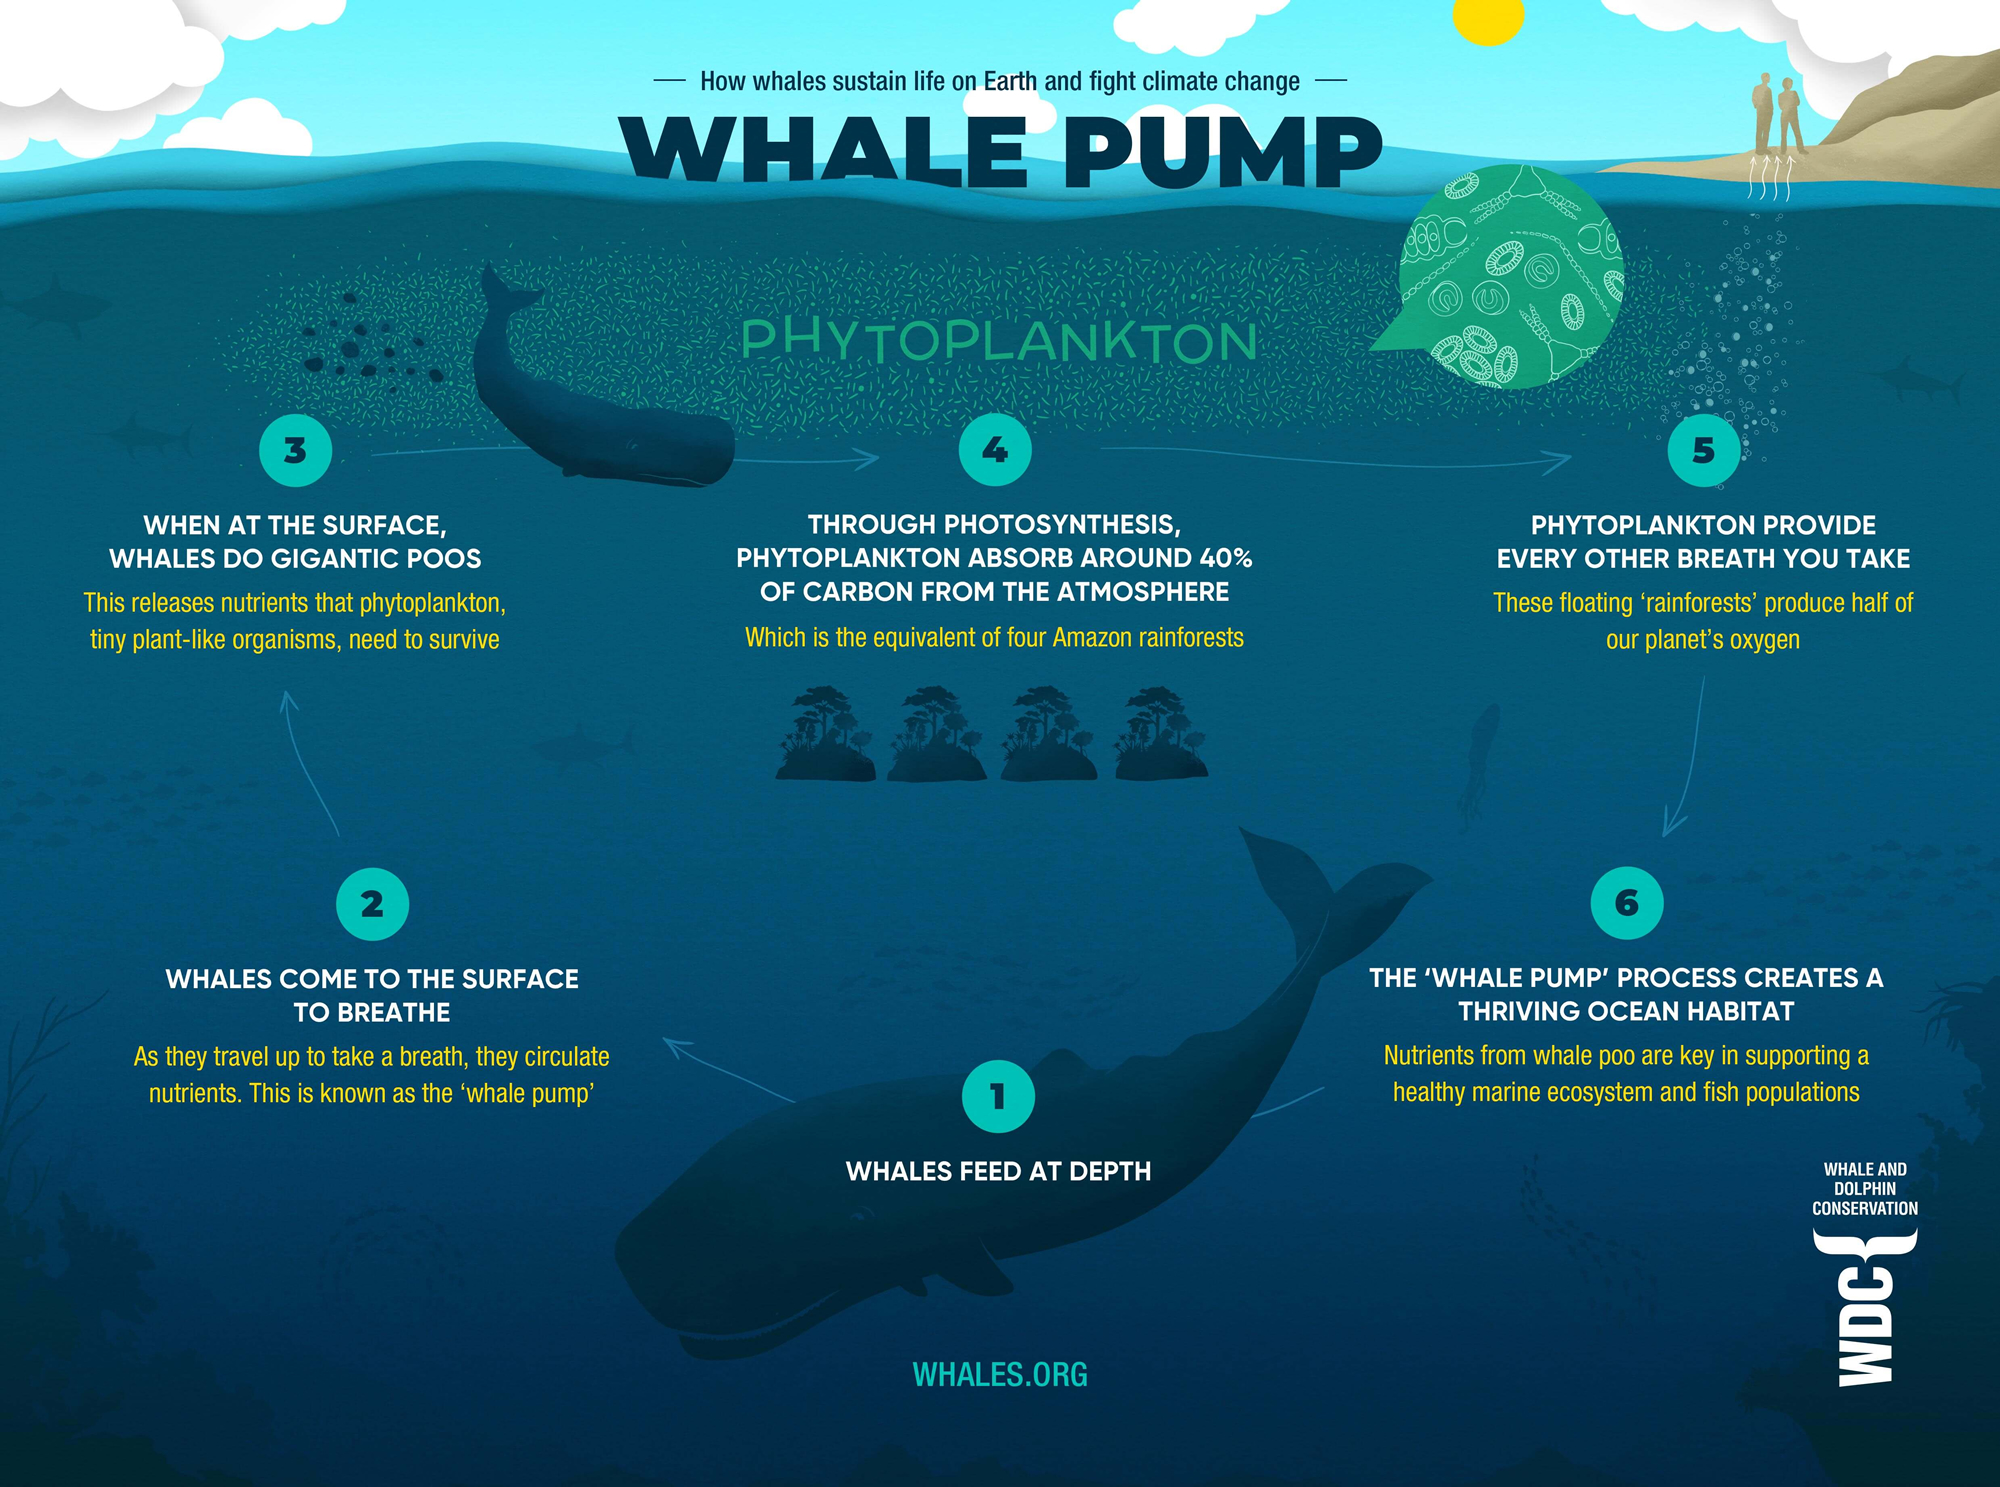 Whale Fall - When whales die they still help combat the climate crisis.